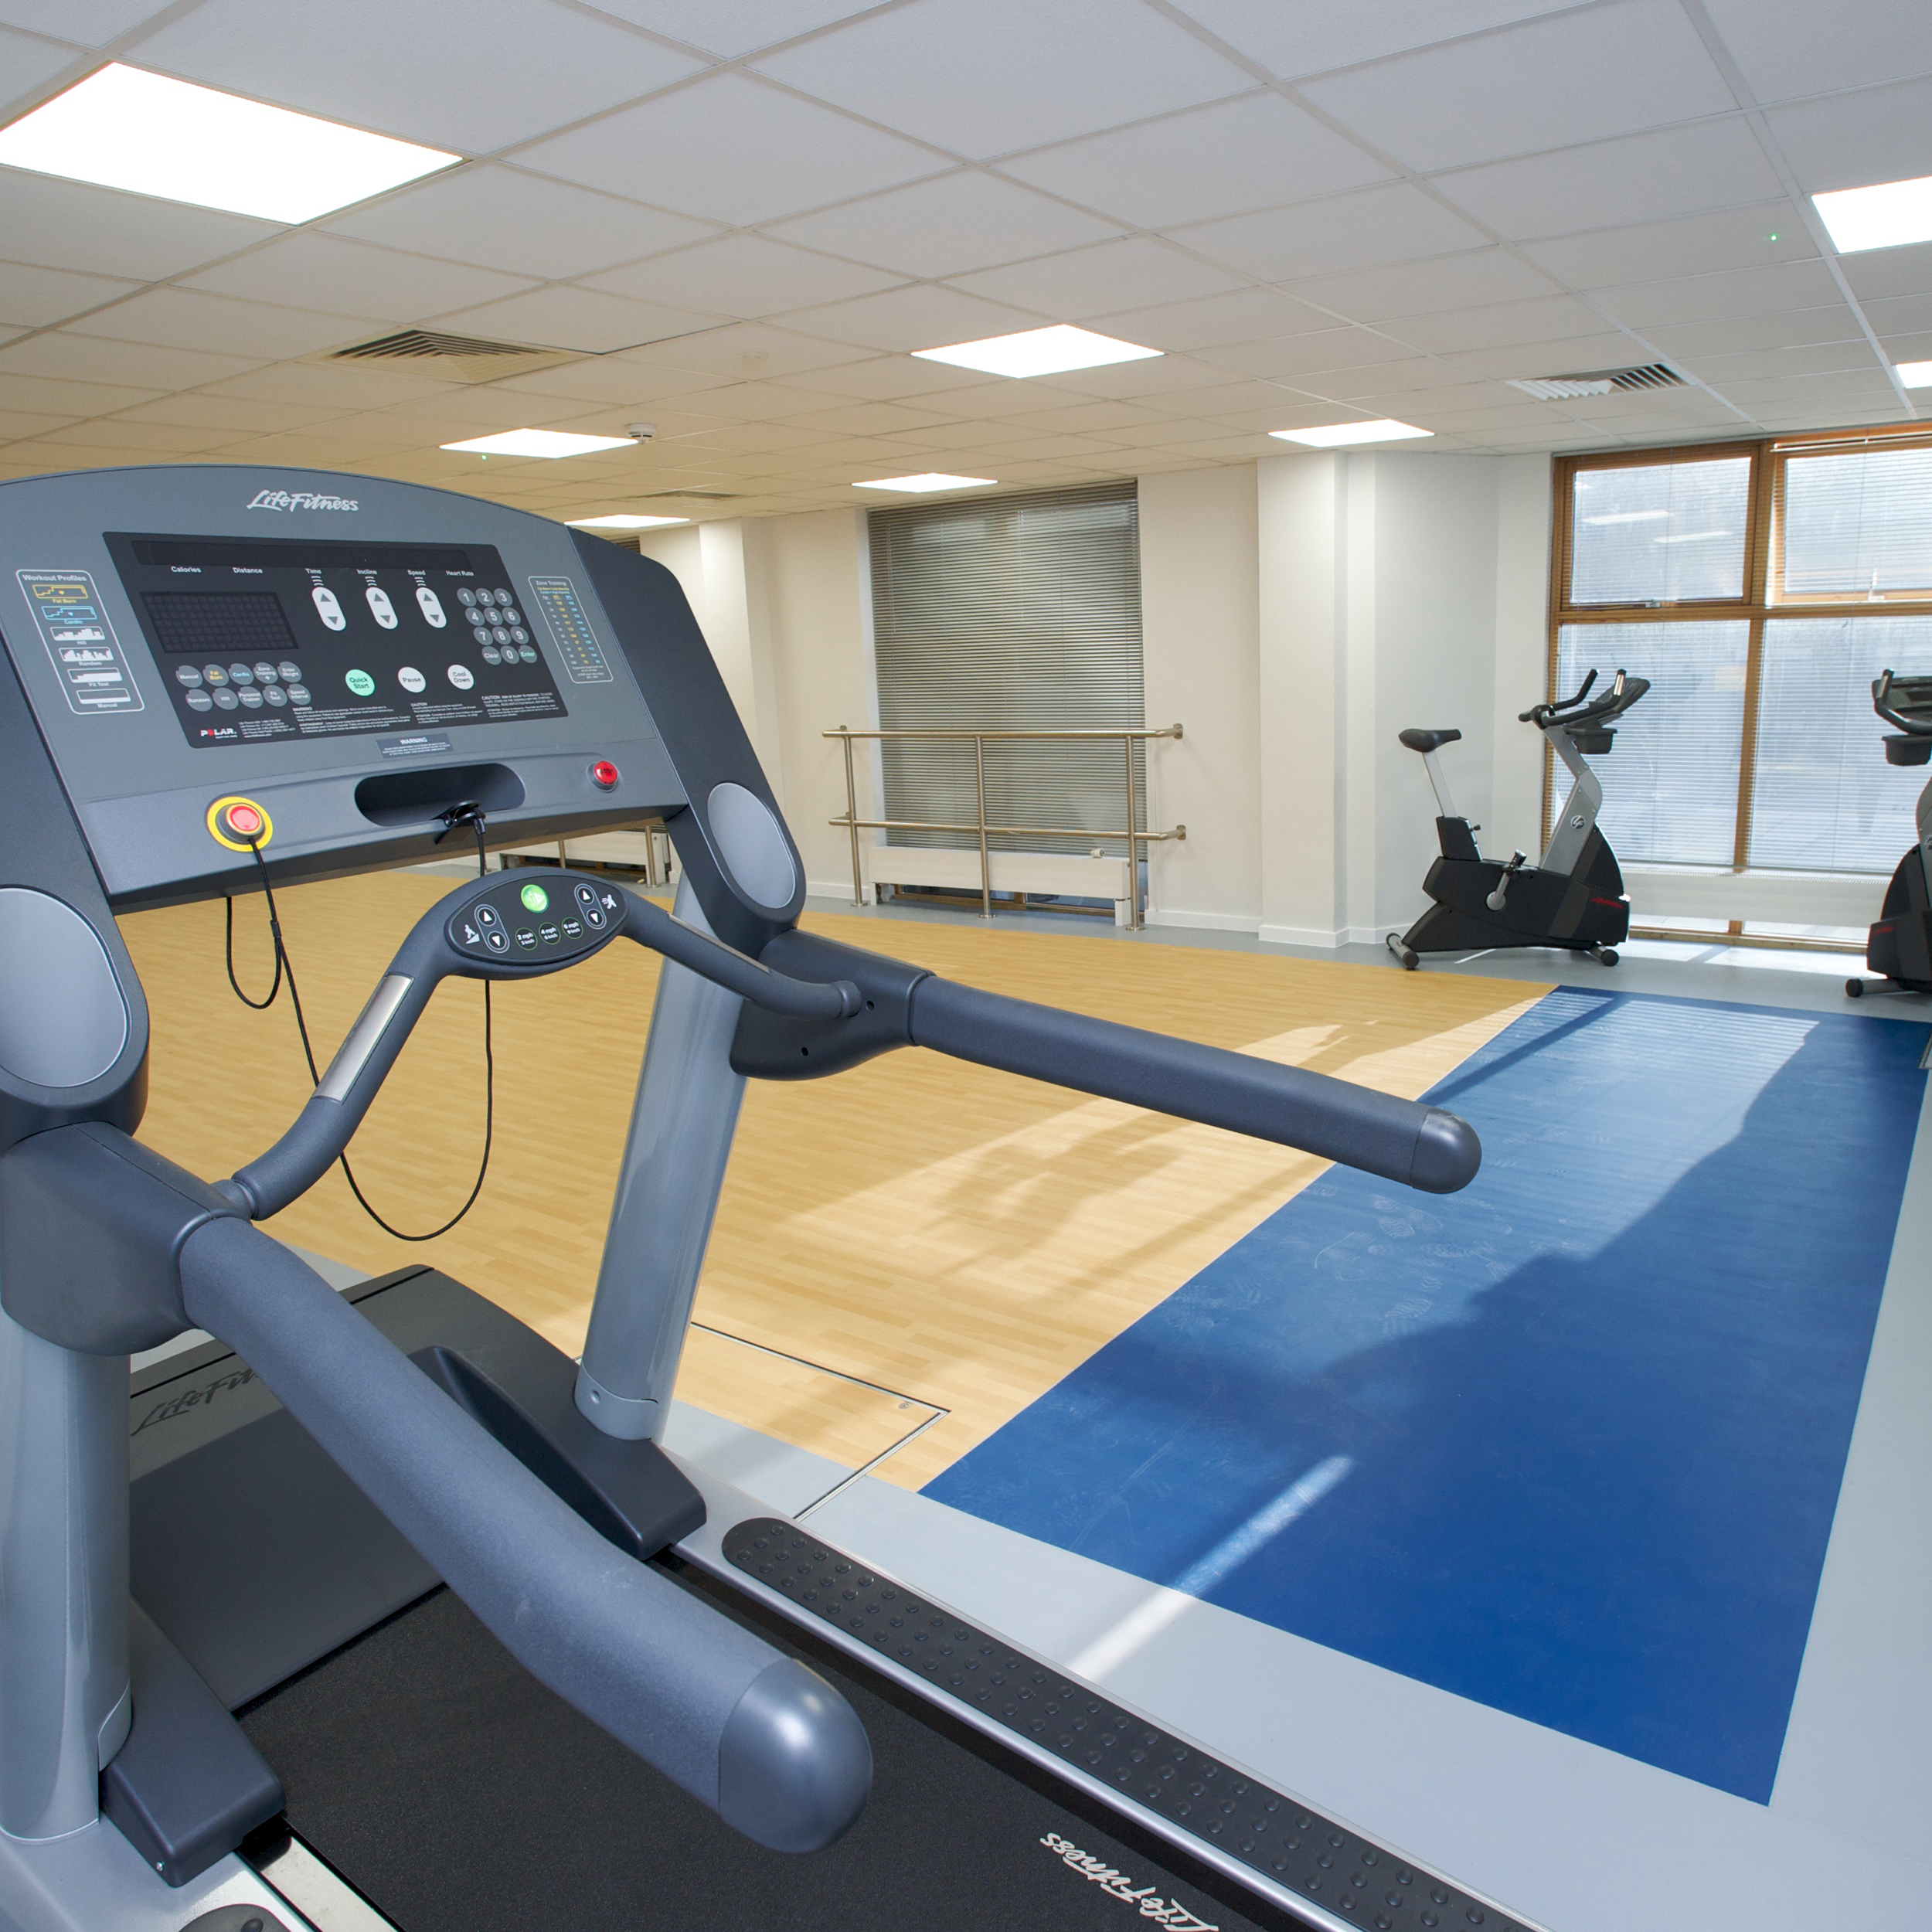 Treadmill and stationary bicycles inside a metropolitan police renovation project